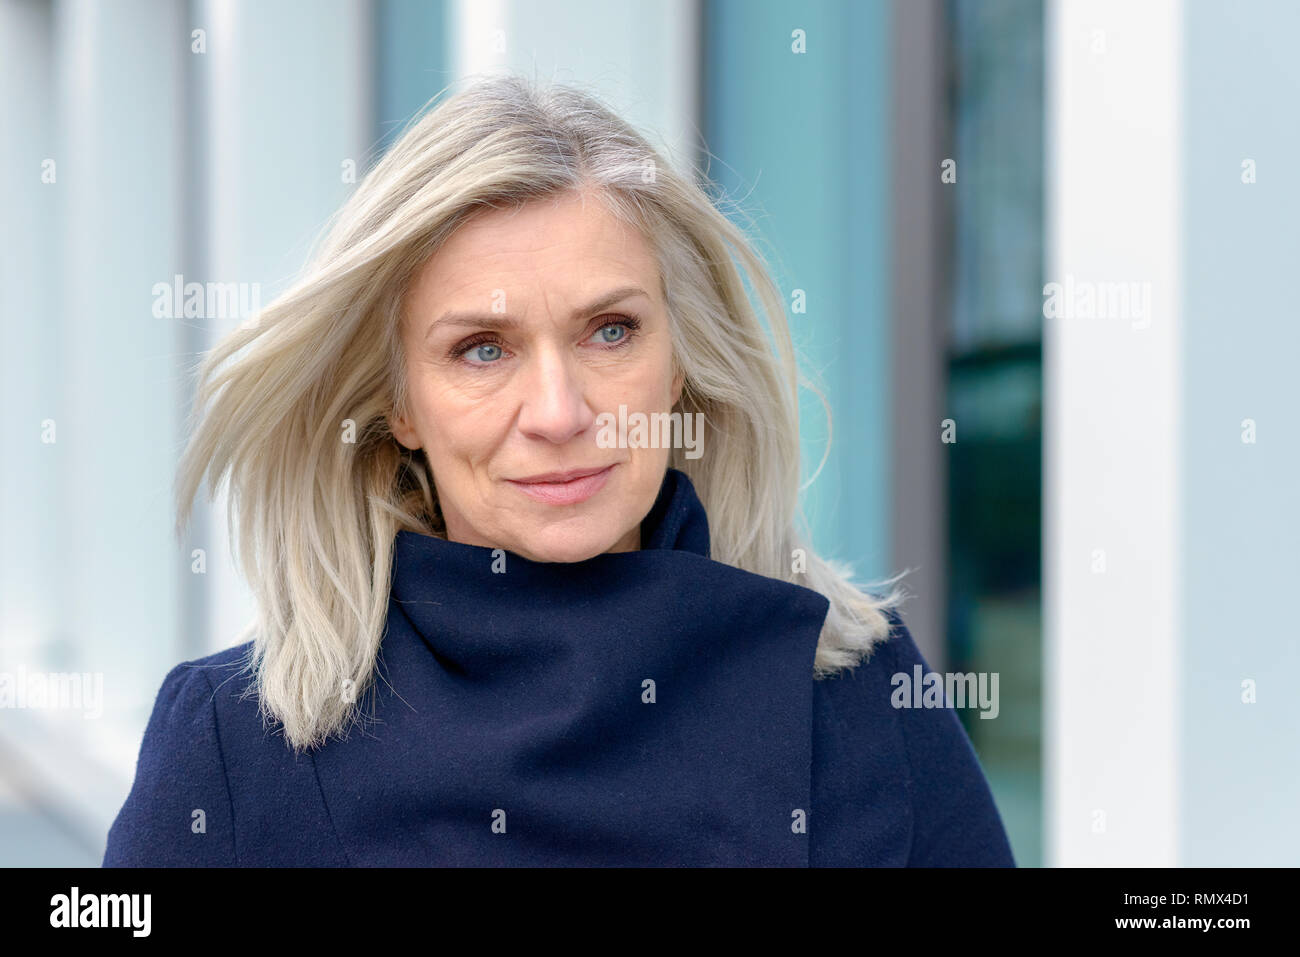 Attractive blond woman with a warm happy smile dressed in a warm winter overcoat standing outdoors smiling at the camera - Stock Image